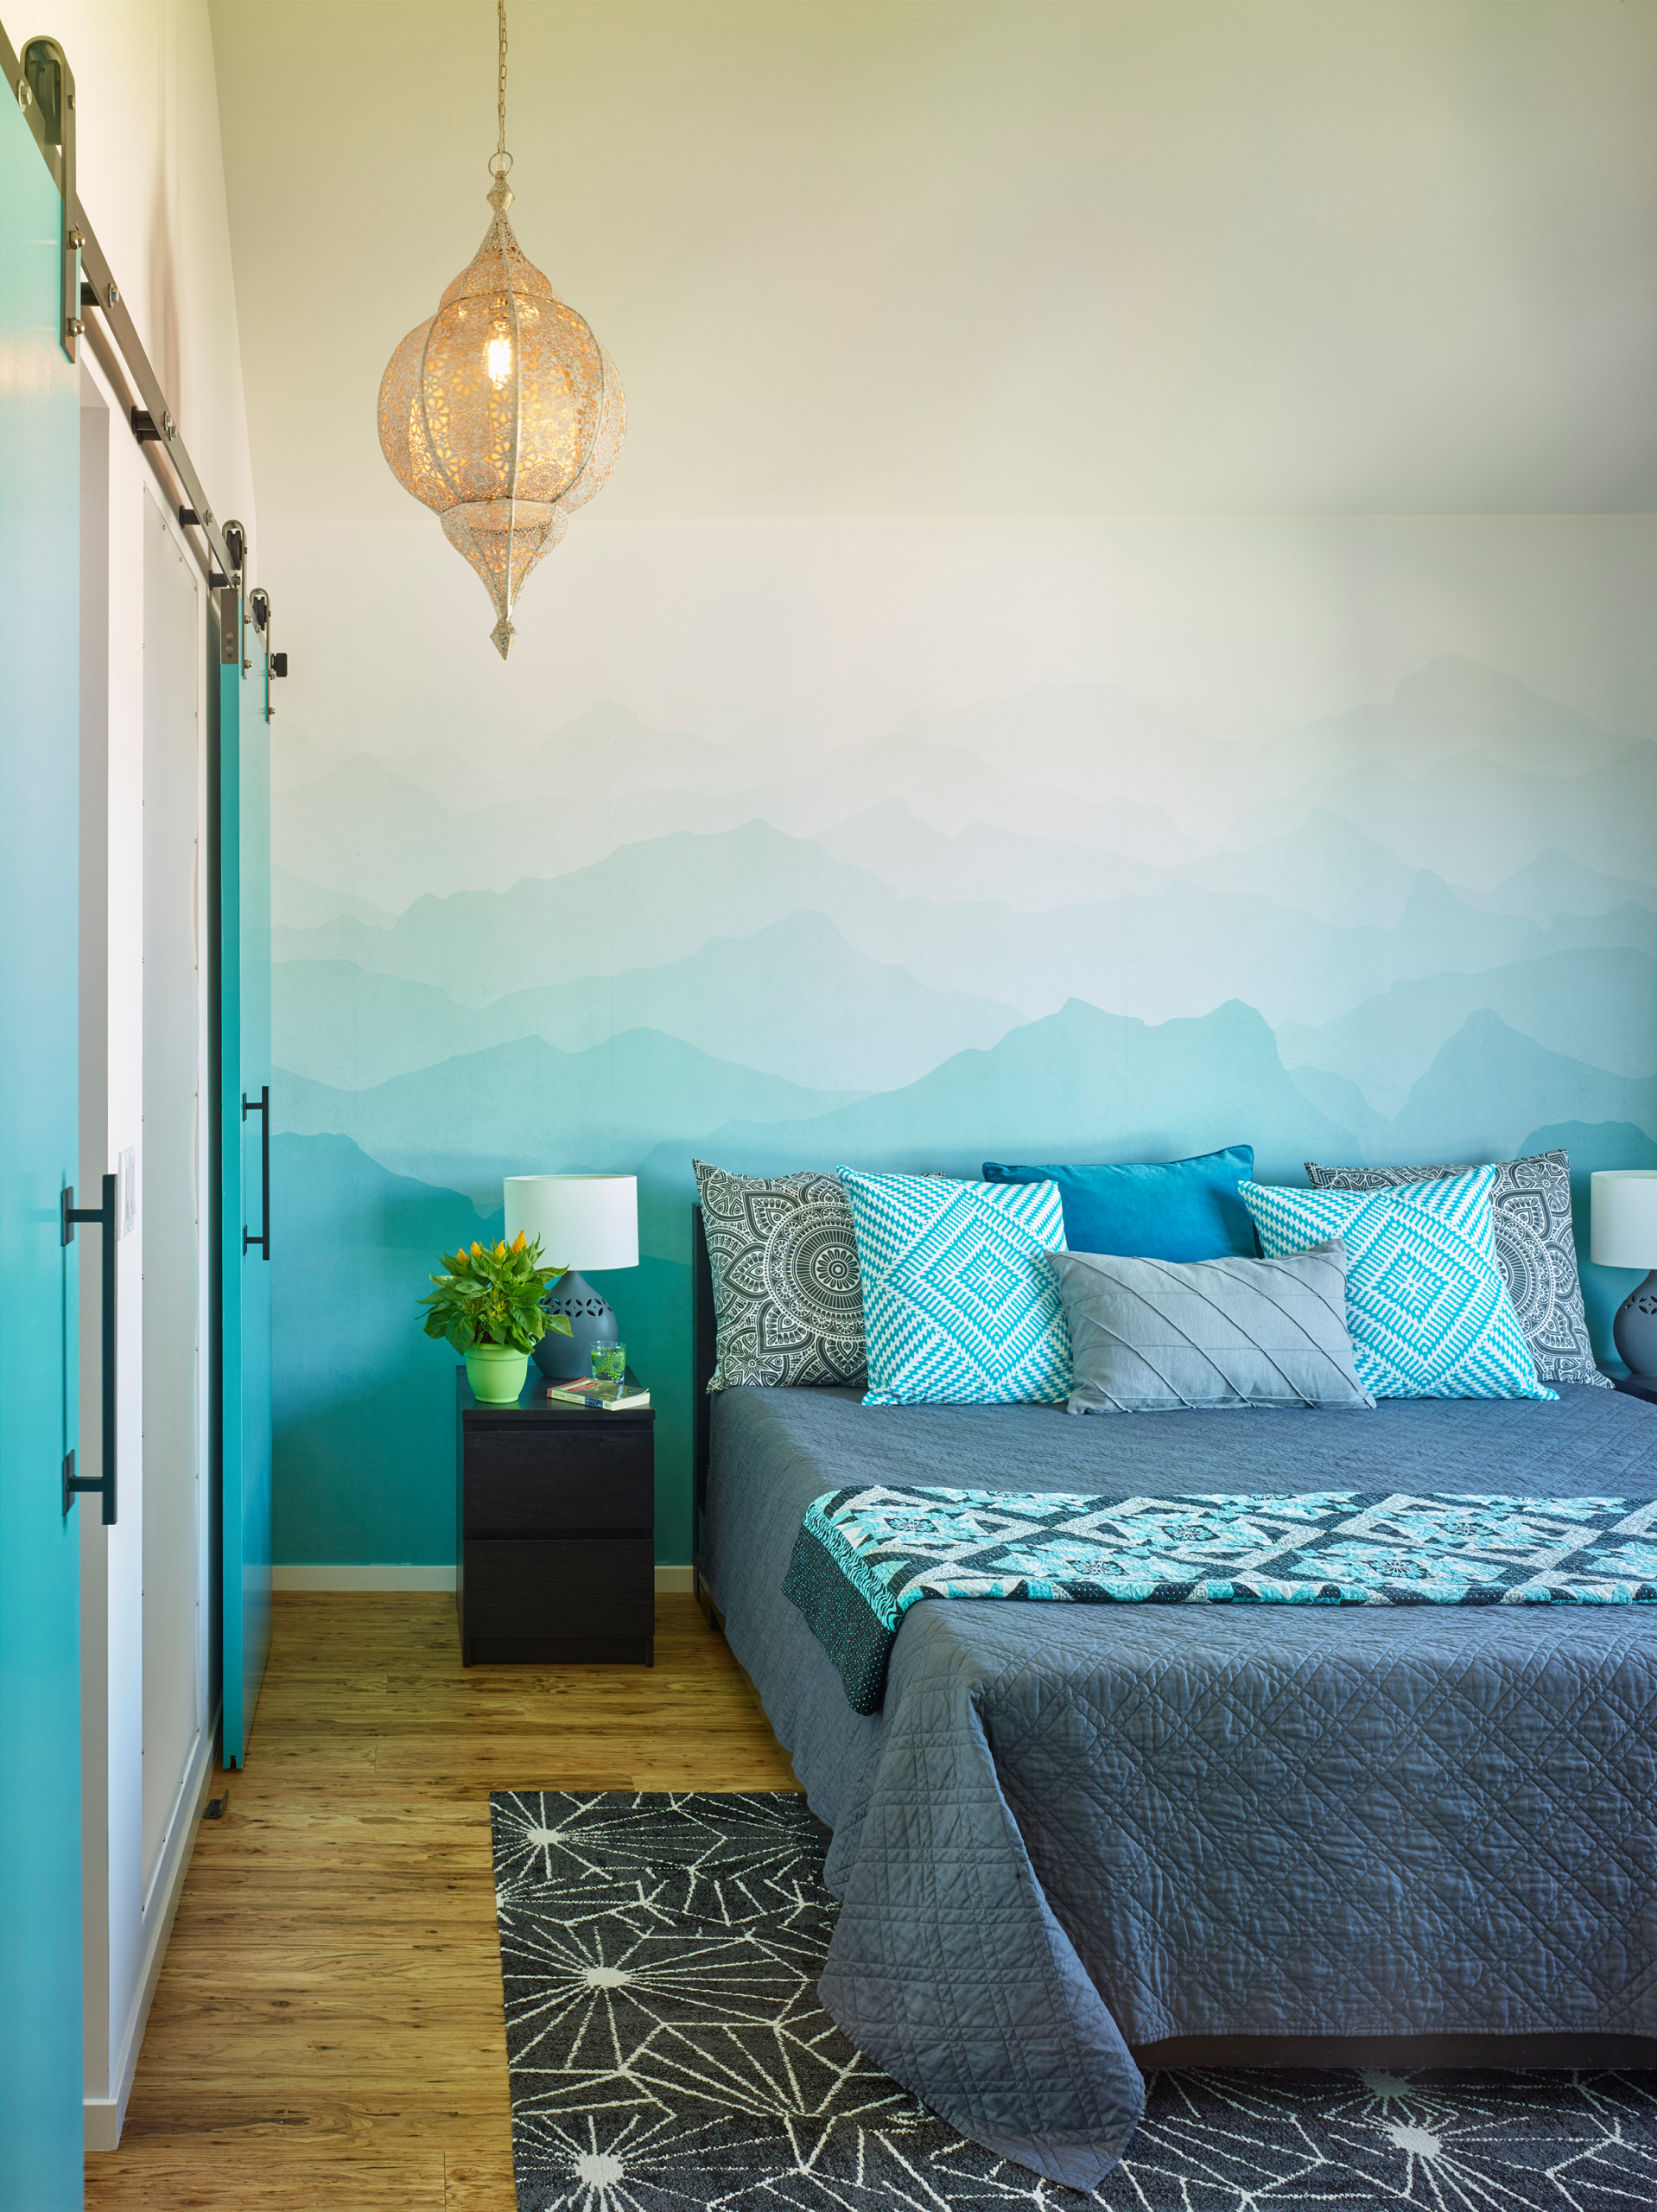 9 Beautiful Turquoise Bedroom Pictures & Ideas - January, 9